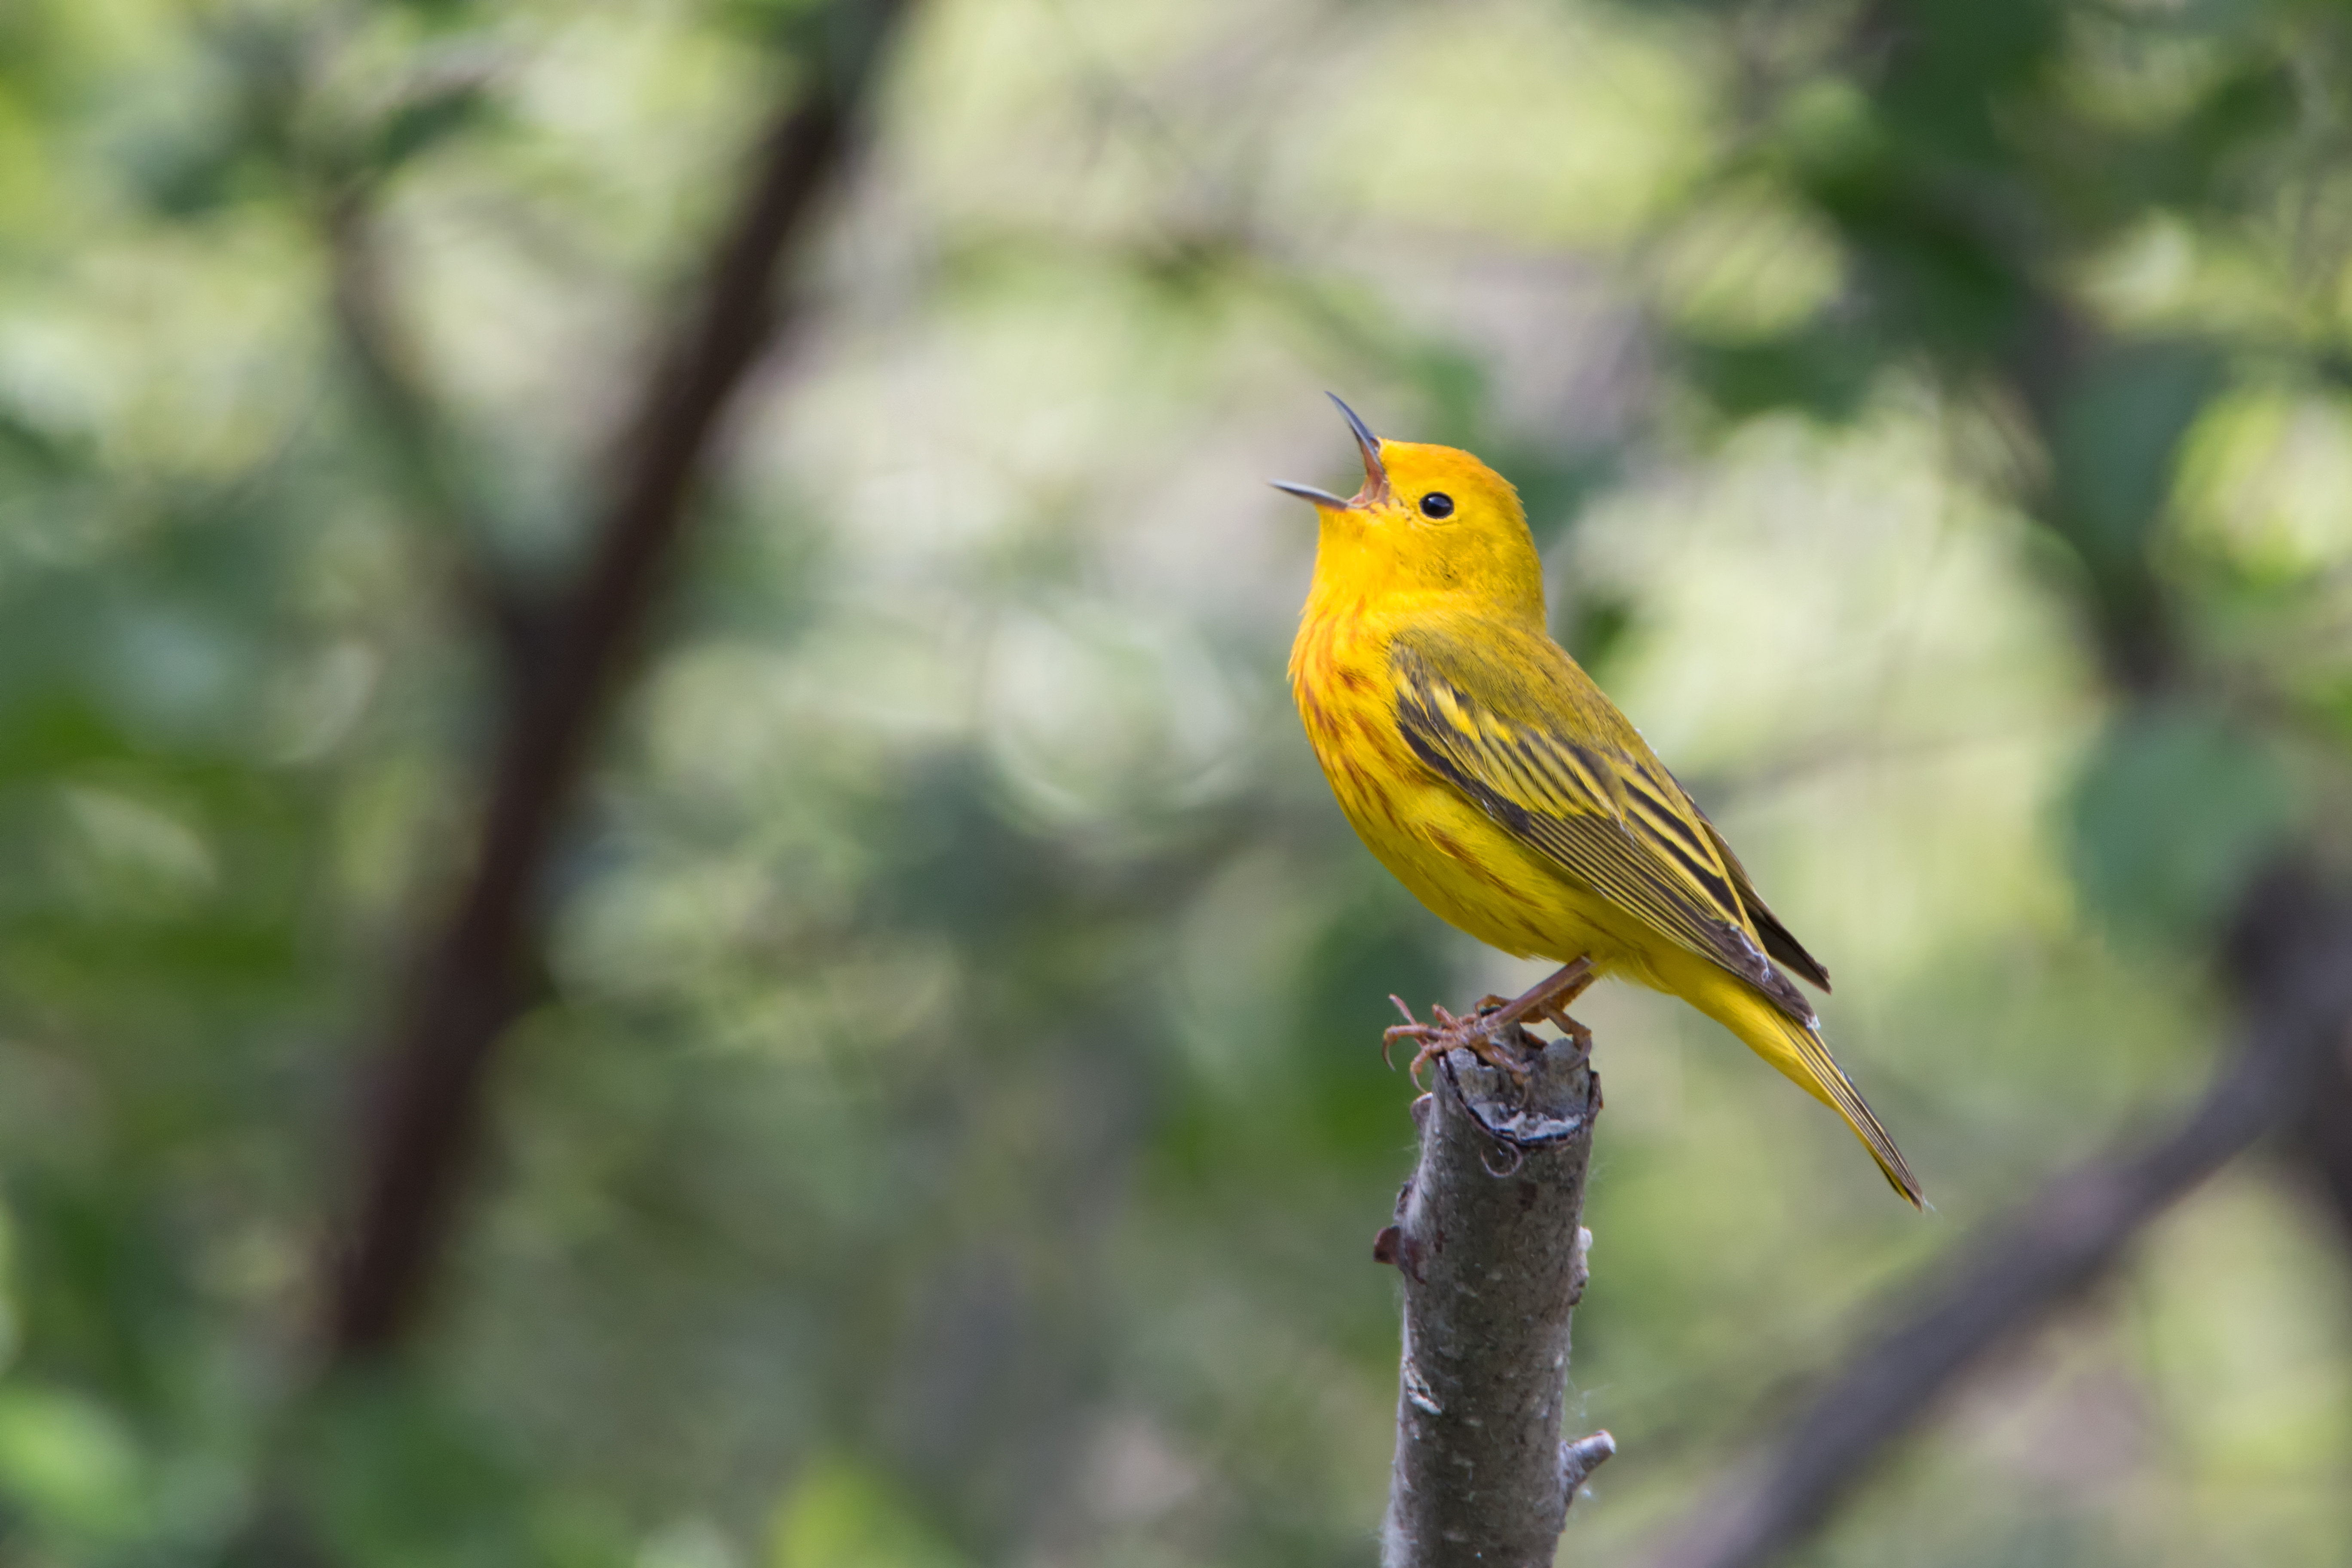 Yellow Warbler in song